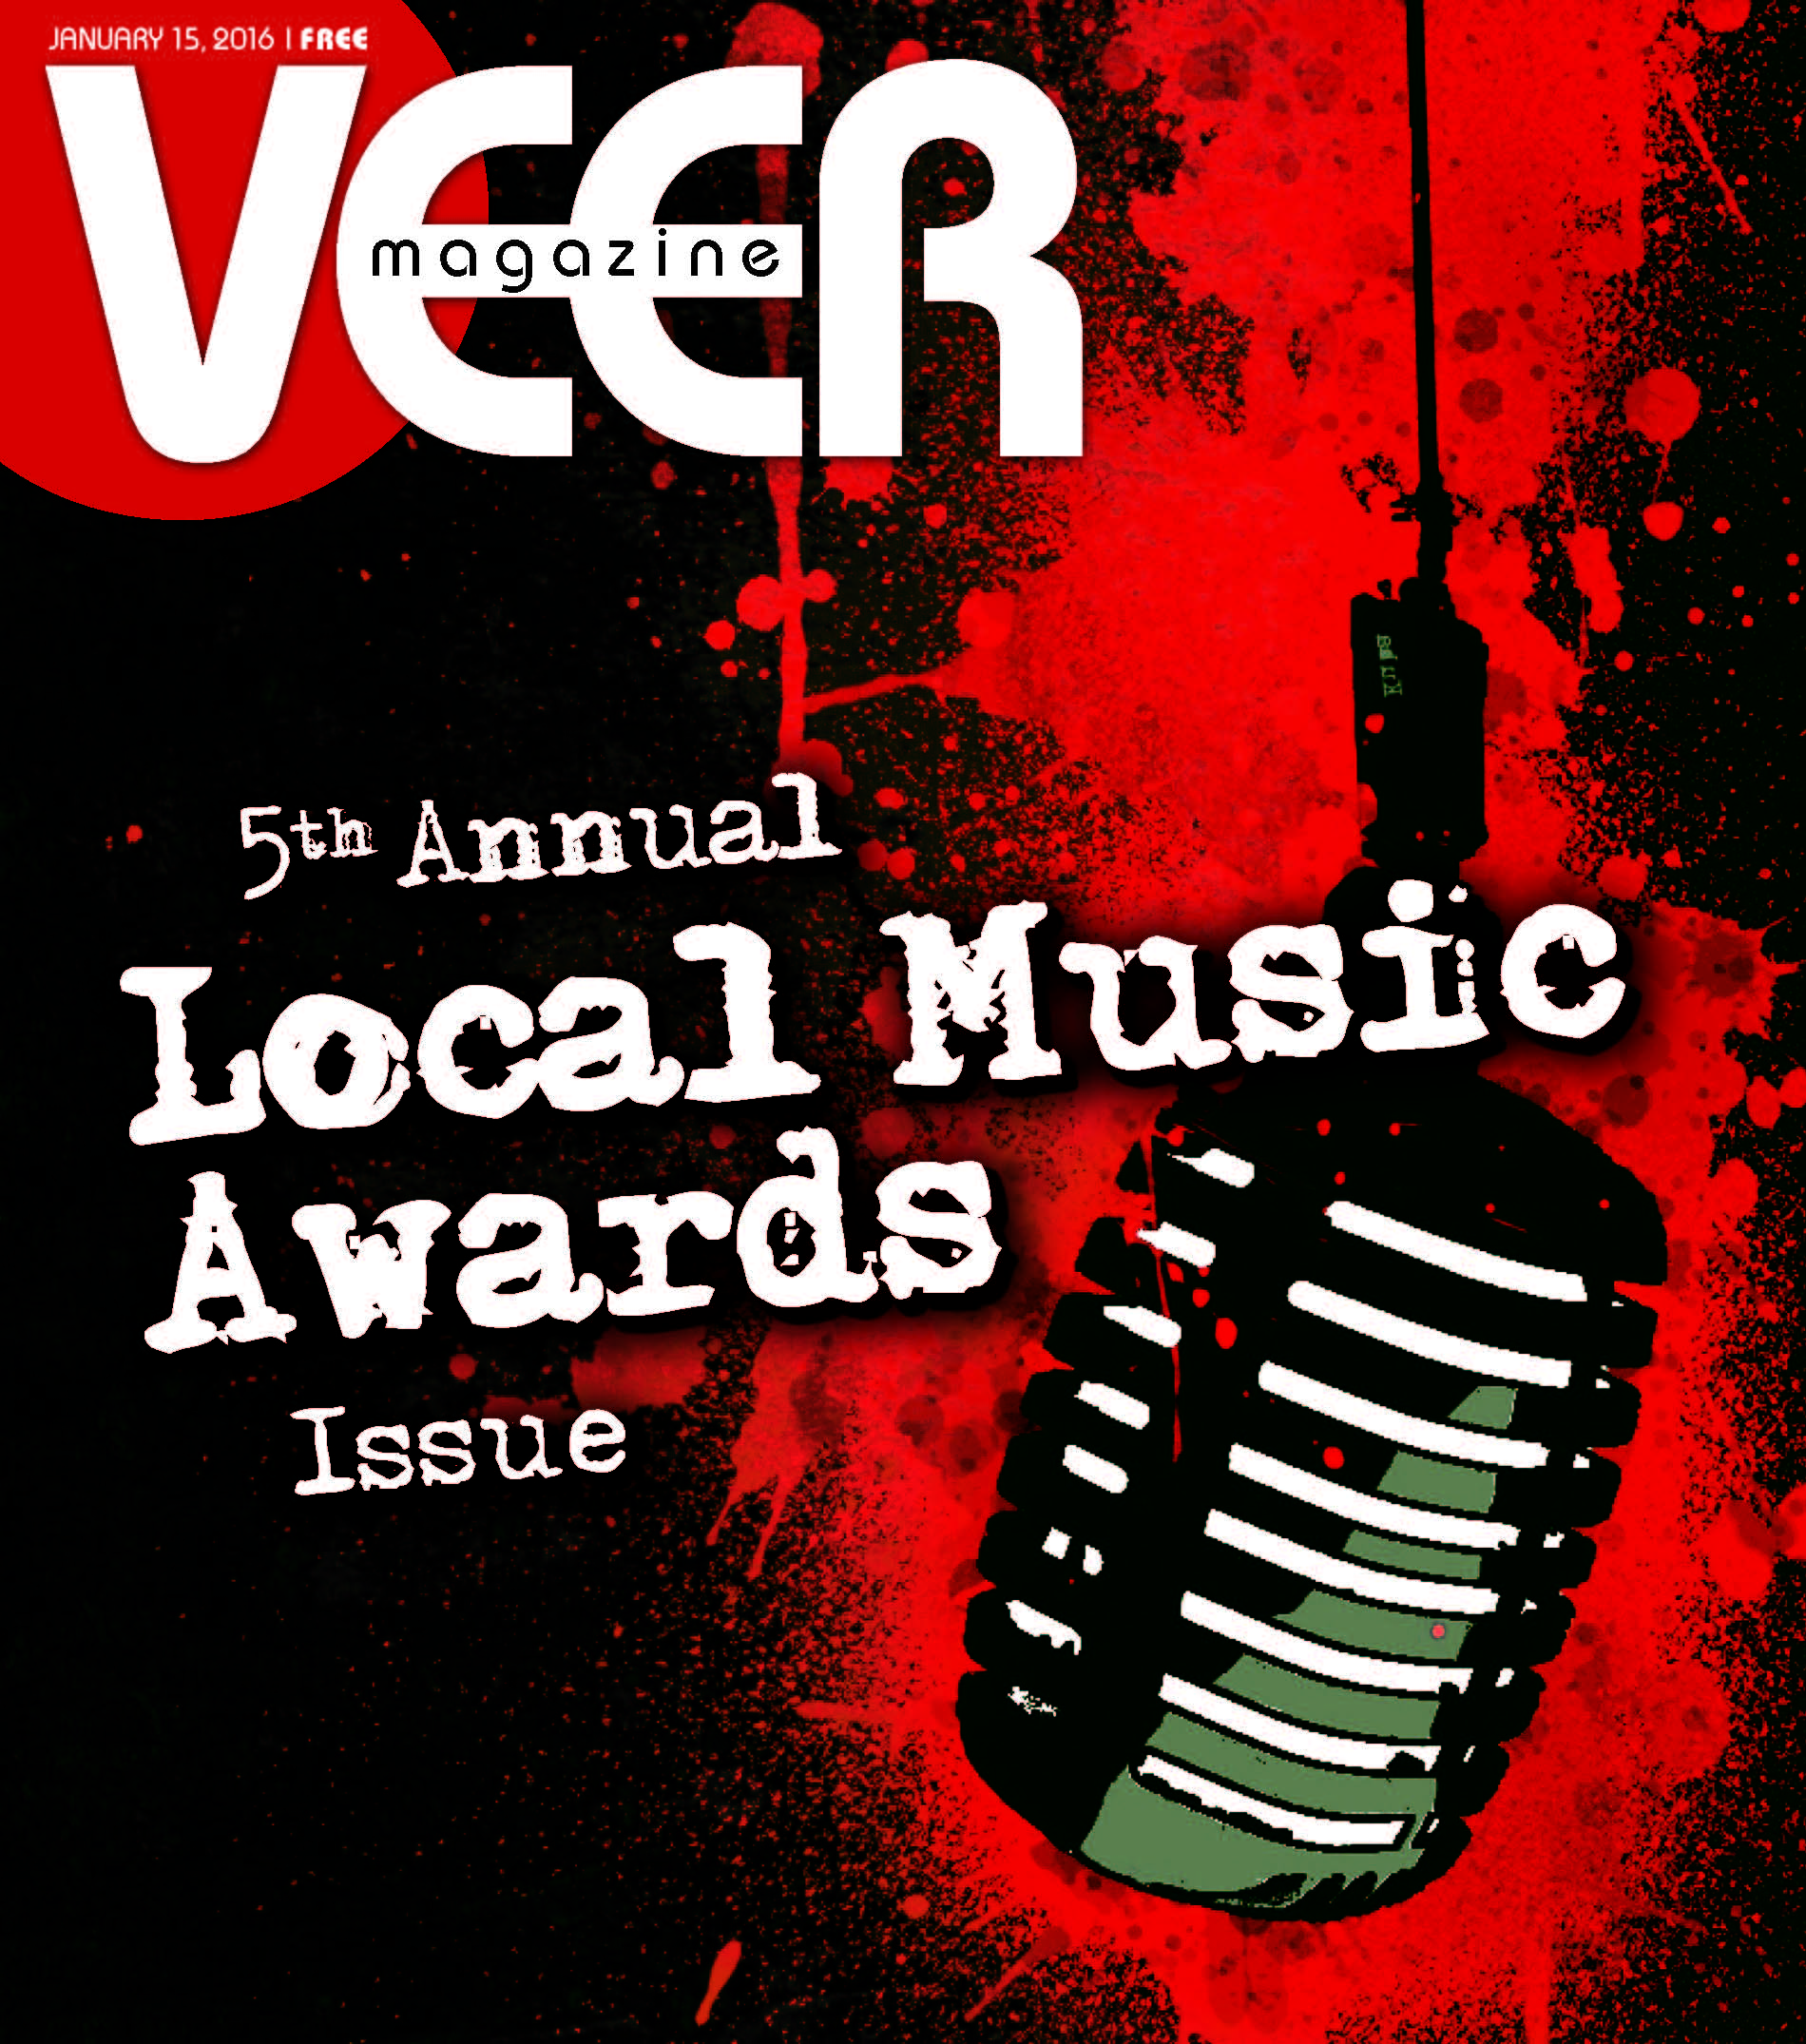 5th Annual Veer Music Awards